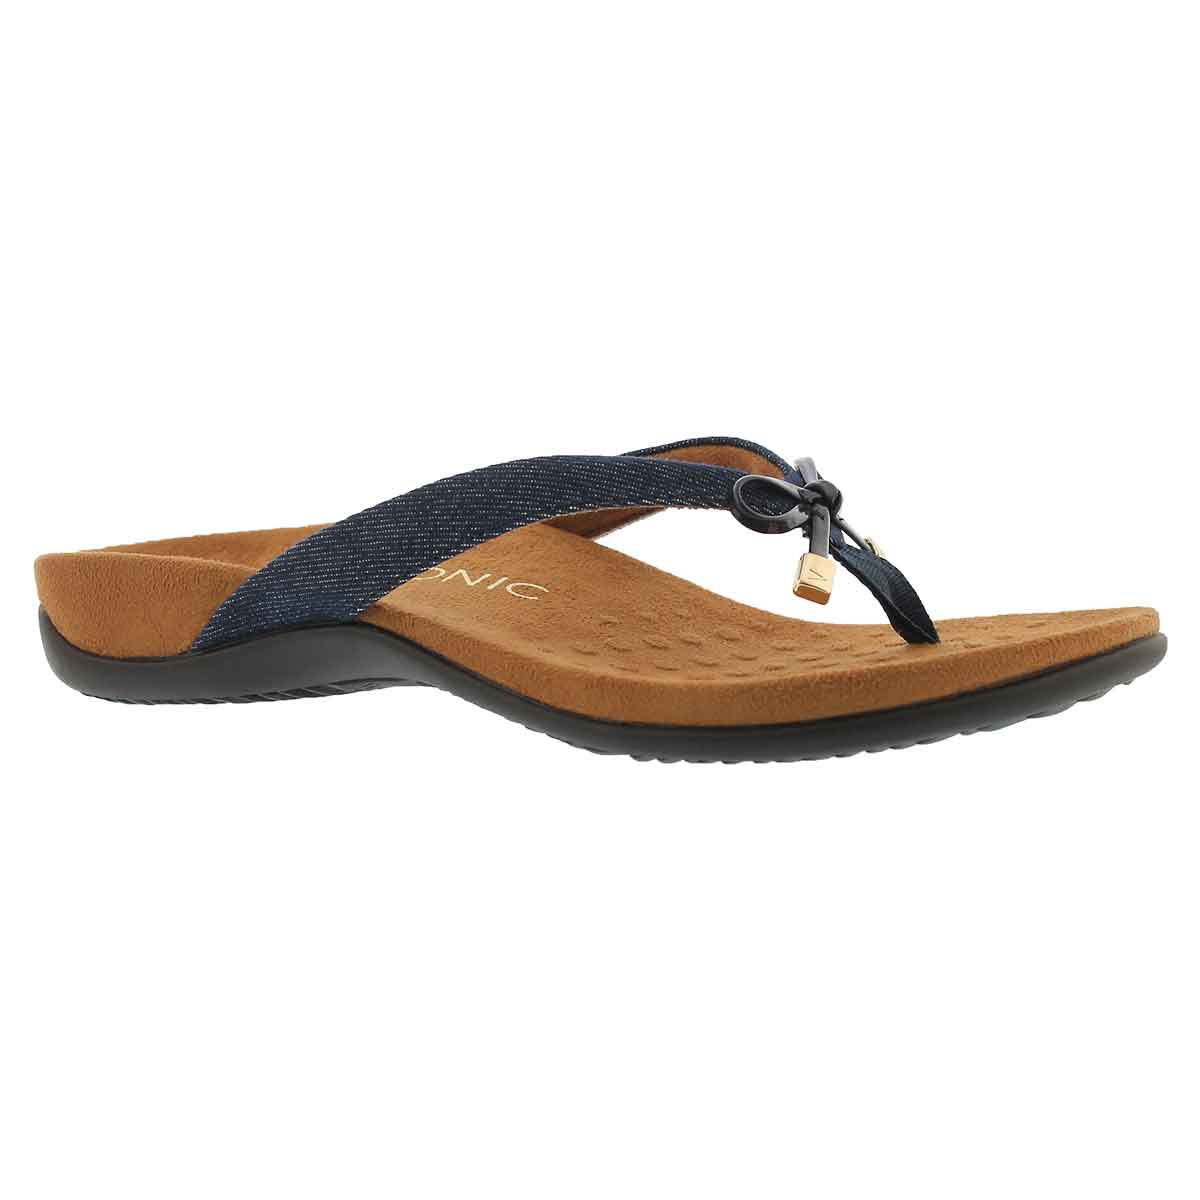 Women's BELLA II denim arch supprt thong sandals